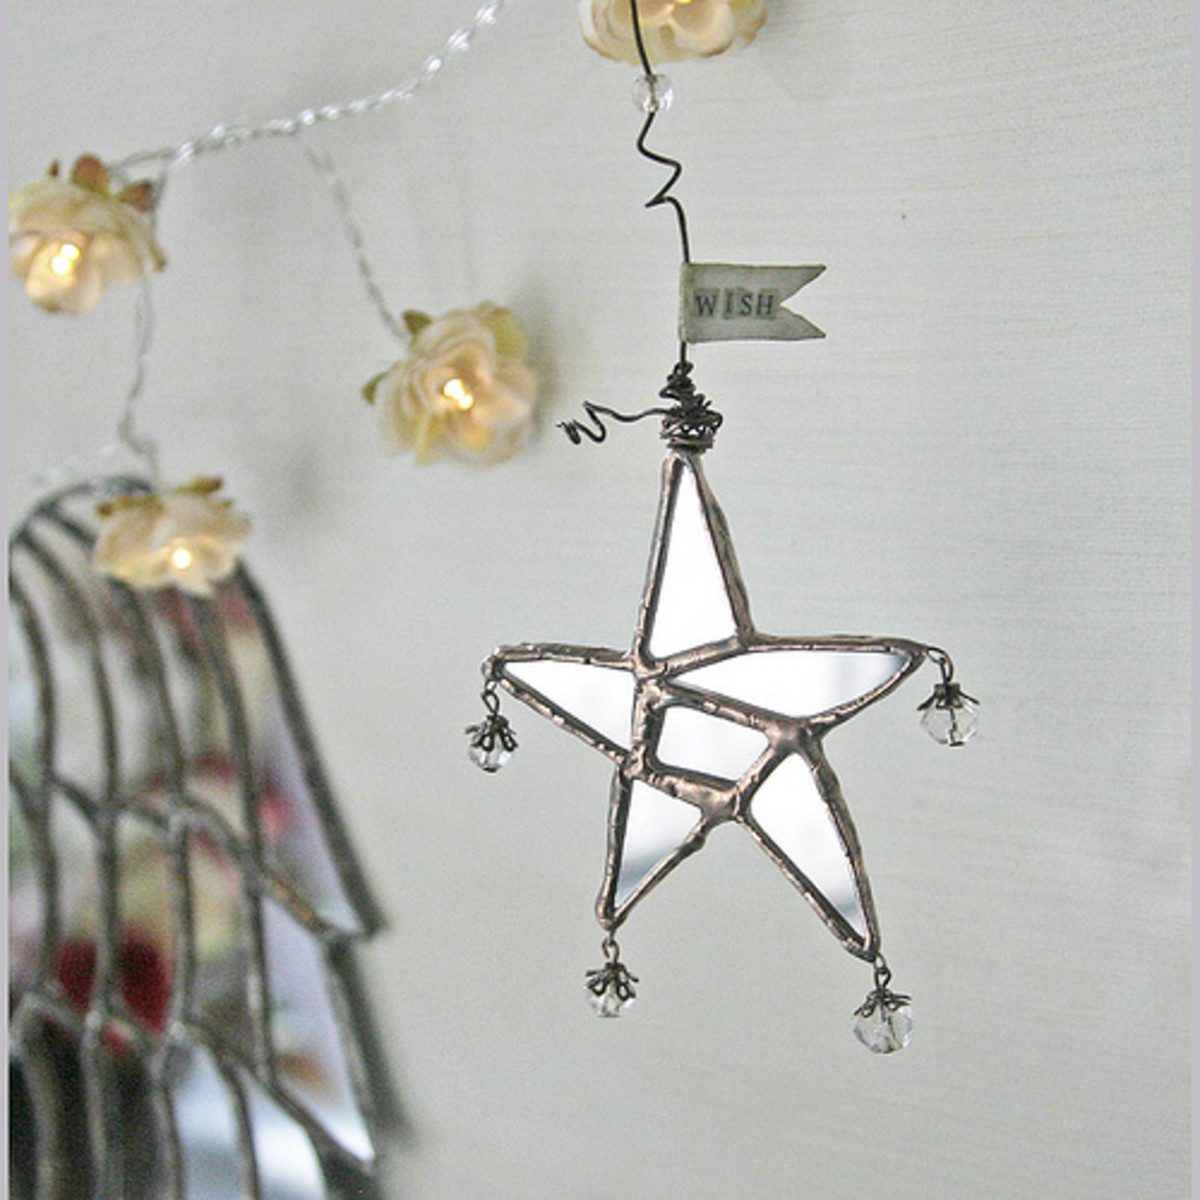 There are so many ways that you can use random pieces of wire for mixed media home decor.